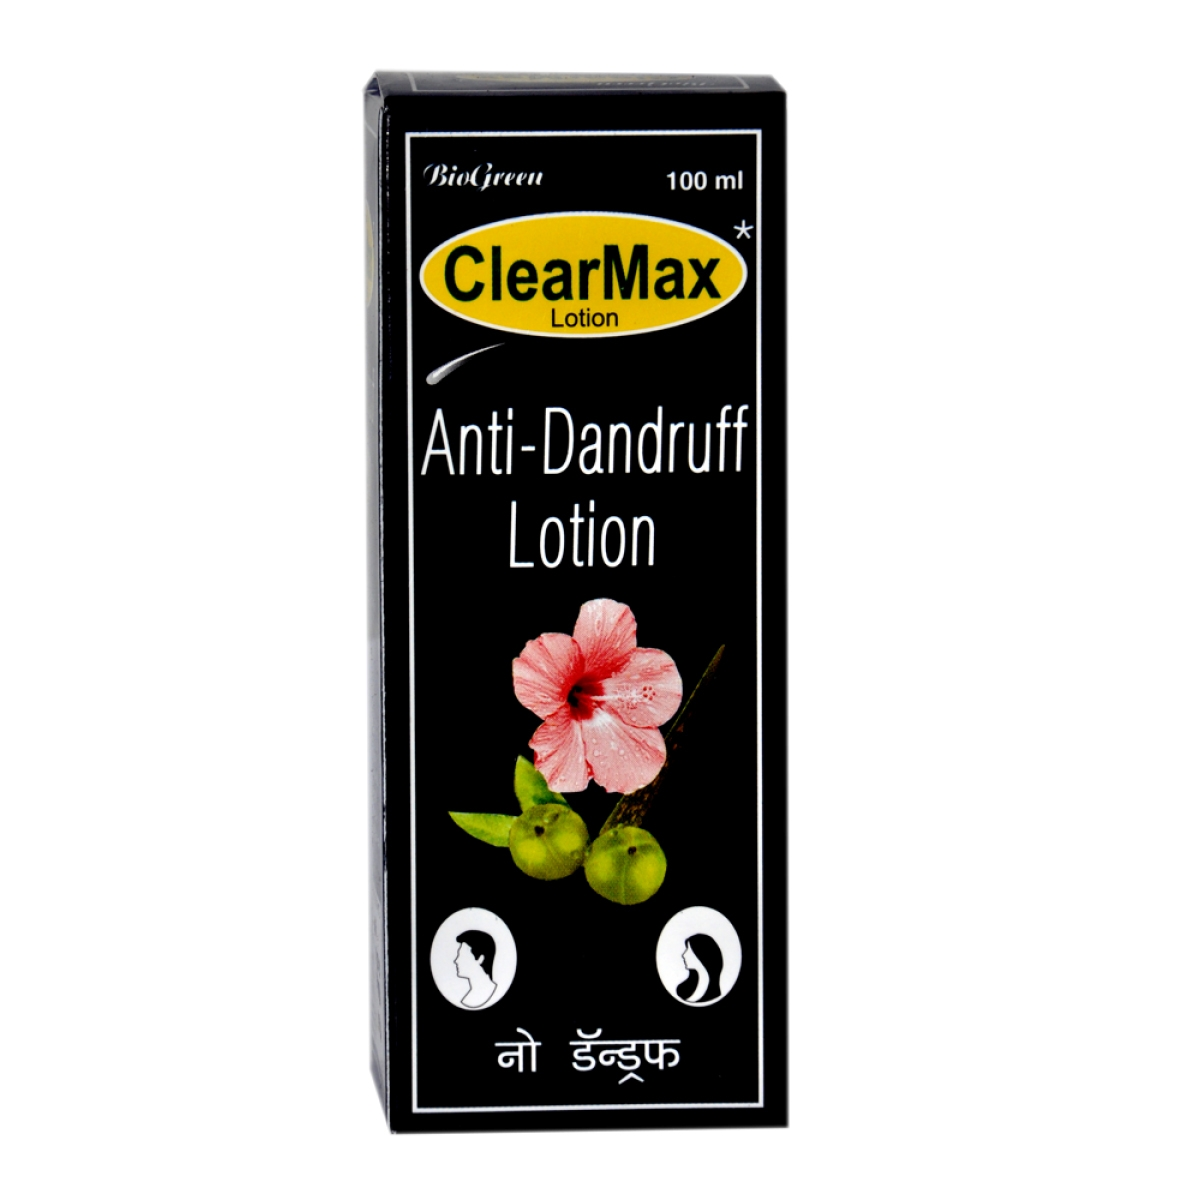 Clear Max Lotion In Chanakyapuri